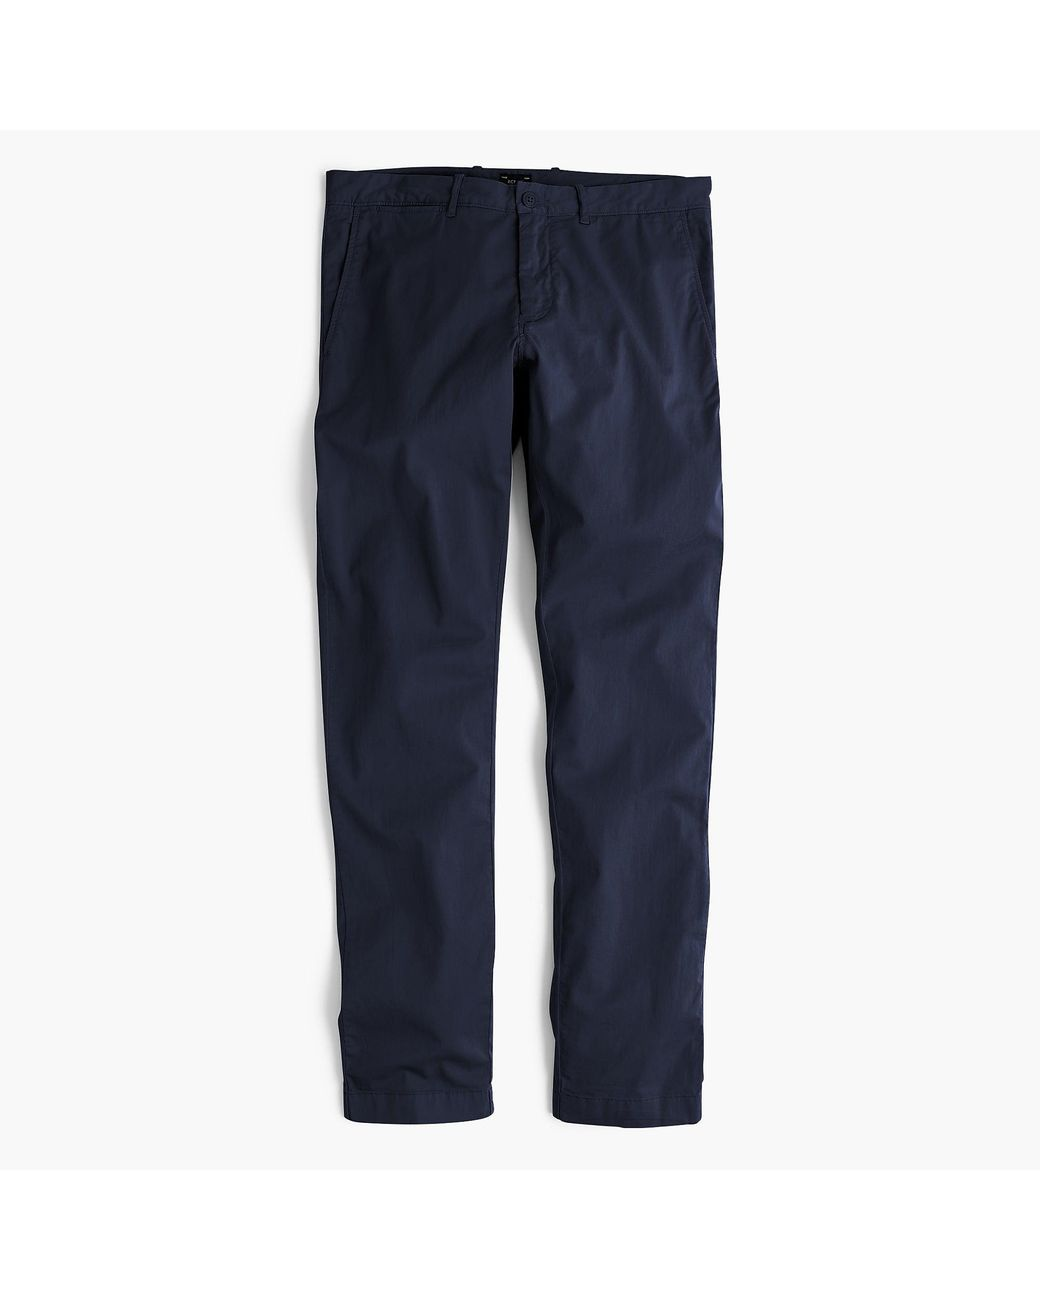 dbf6af9aa3d87d J.Crew 484 Slim-fit Lightweight Garment-dyed Stretch Chino in Blue for Men  - Lyst